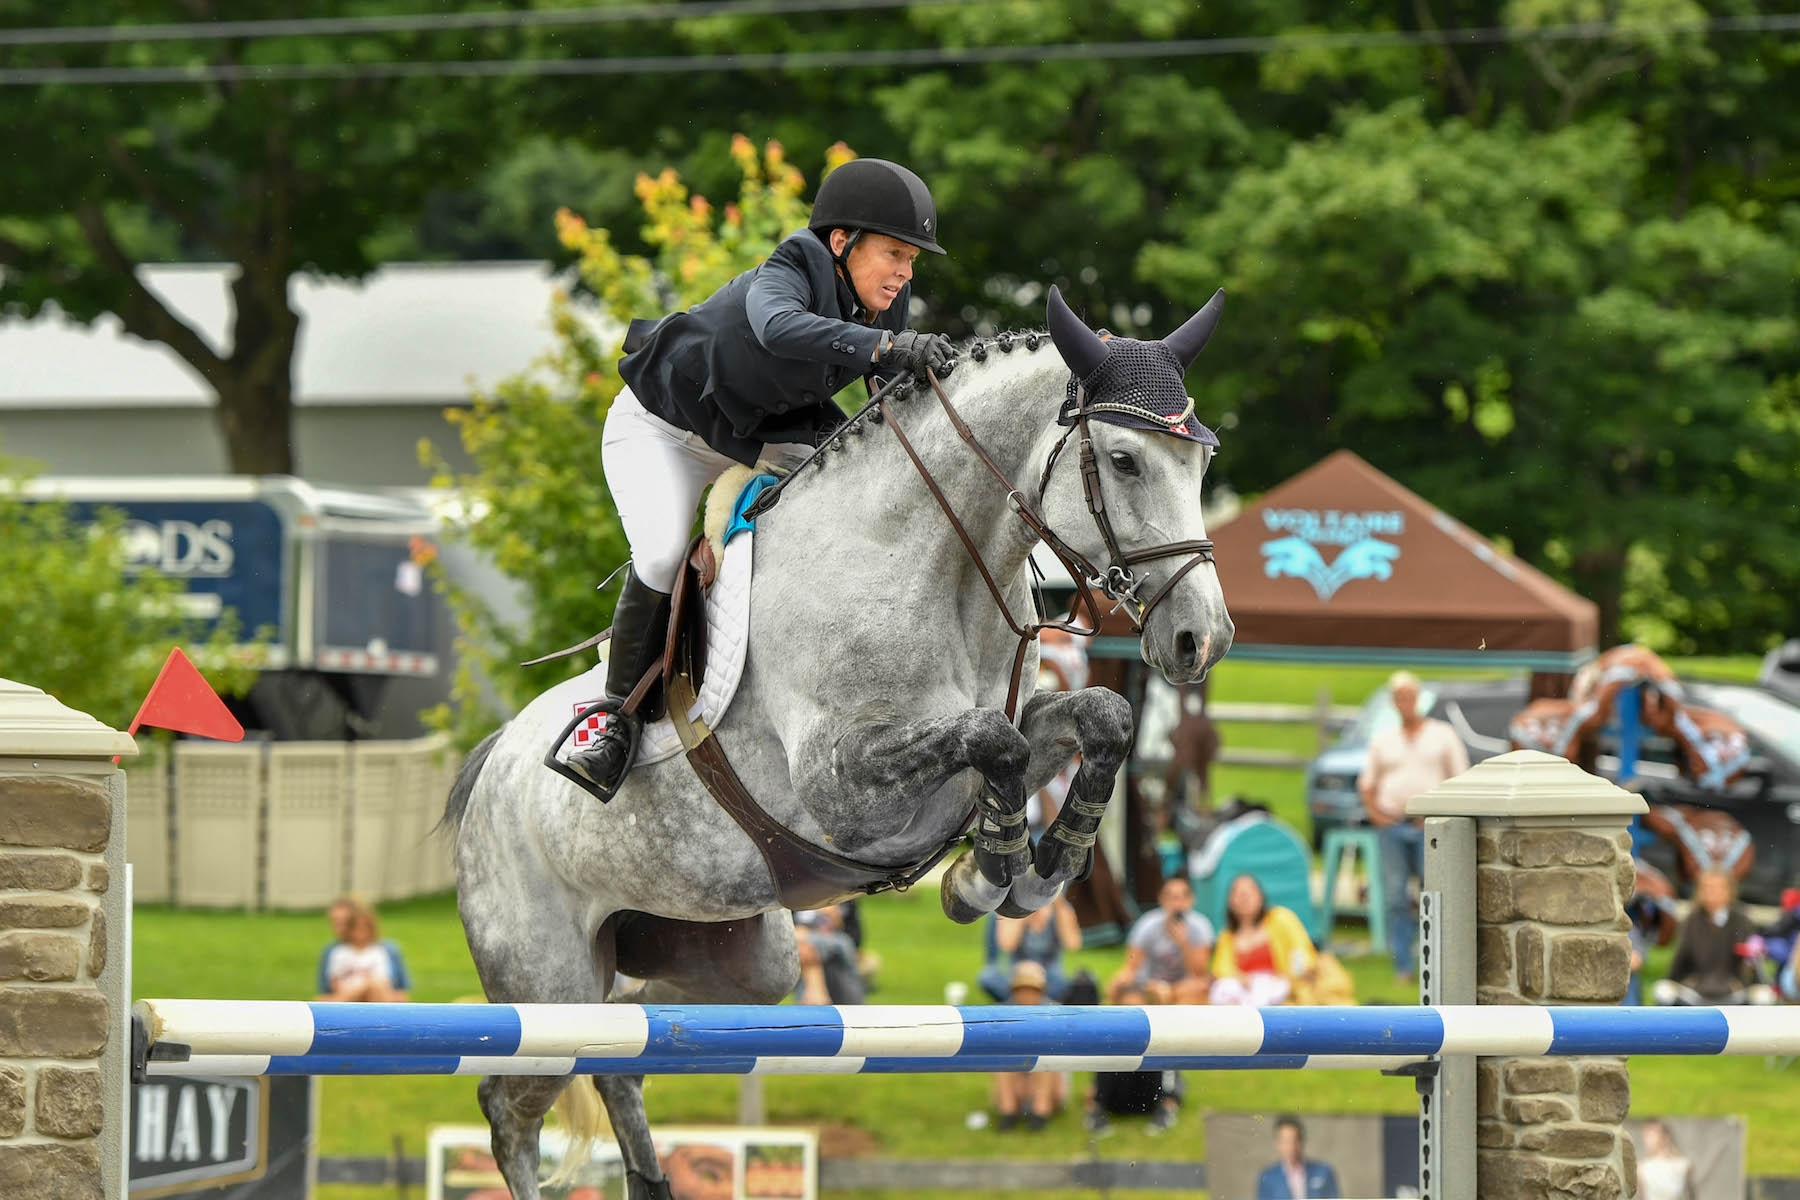 Marylisa Leffler of Brookeville, MD, and Luminous won the $50,000 Vermont Summer Celebration Grand Prix on Saturday, August 11 in East Dorset, VT. <br><b>Photo by <a href='https://www.andrewryback.com/' target='_blank'>Andrew Ryback Photography</a></b>